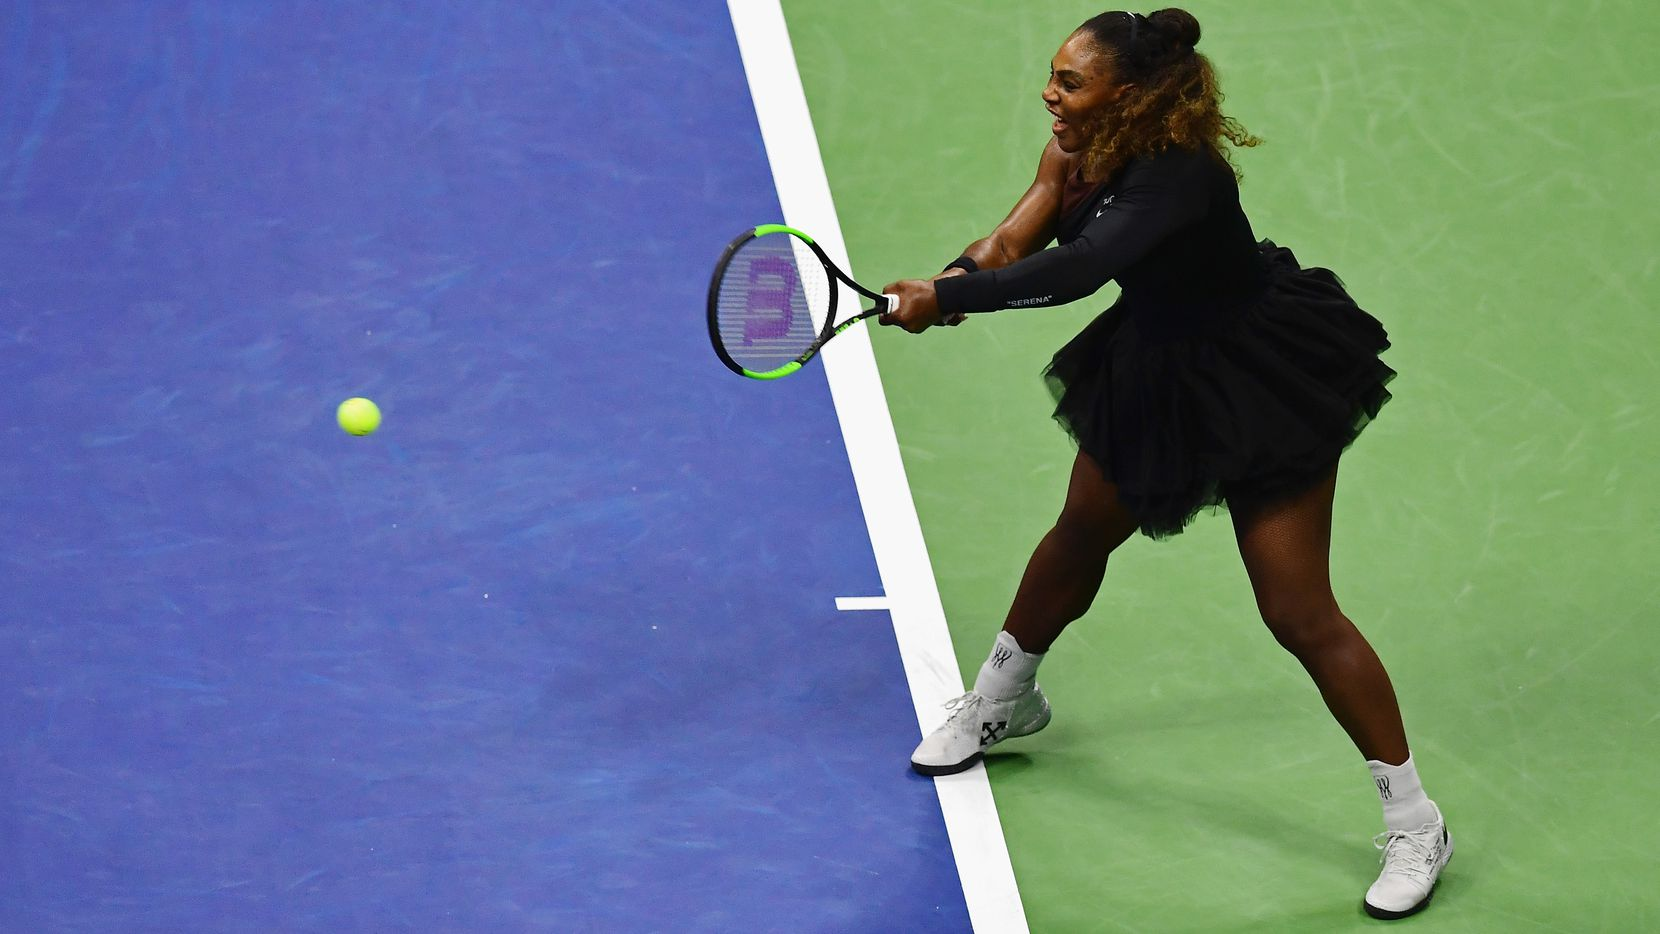 Serena Williams returns the ball during her women's singles first round match against Magda Linette of Poland on Day One of the 2018 US Open at the USTA Billie Jean King National Tennis Center.